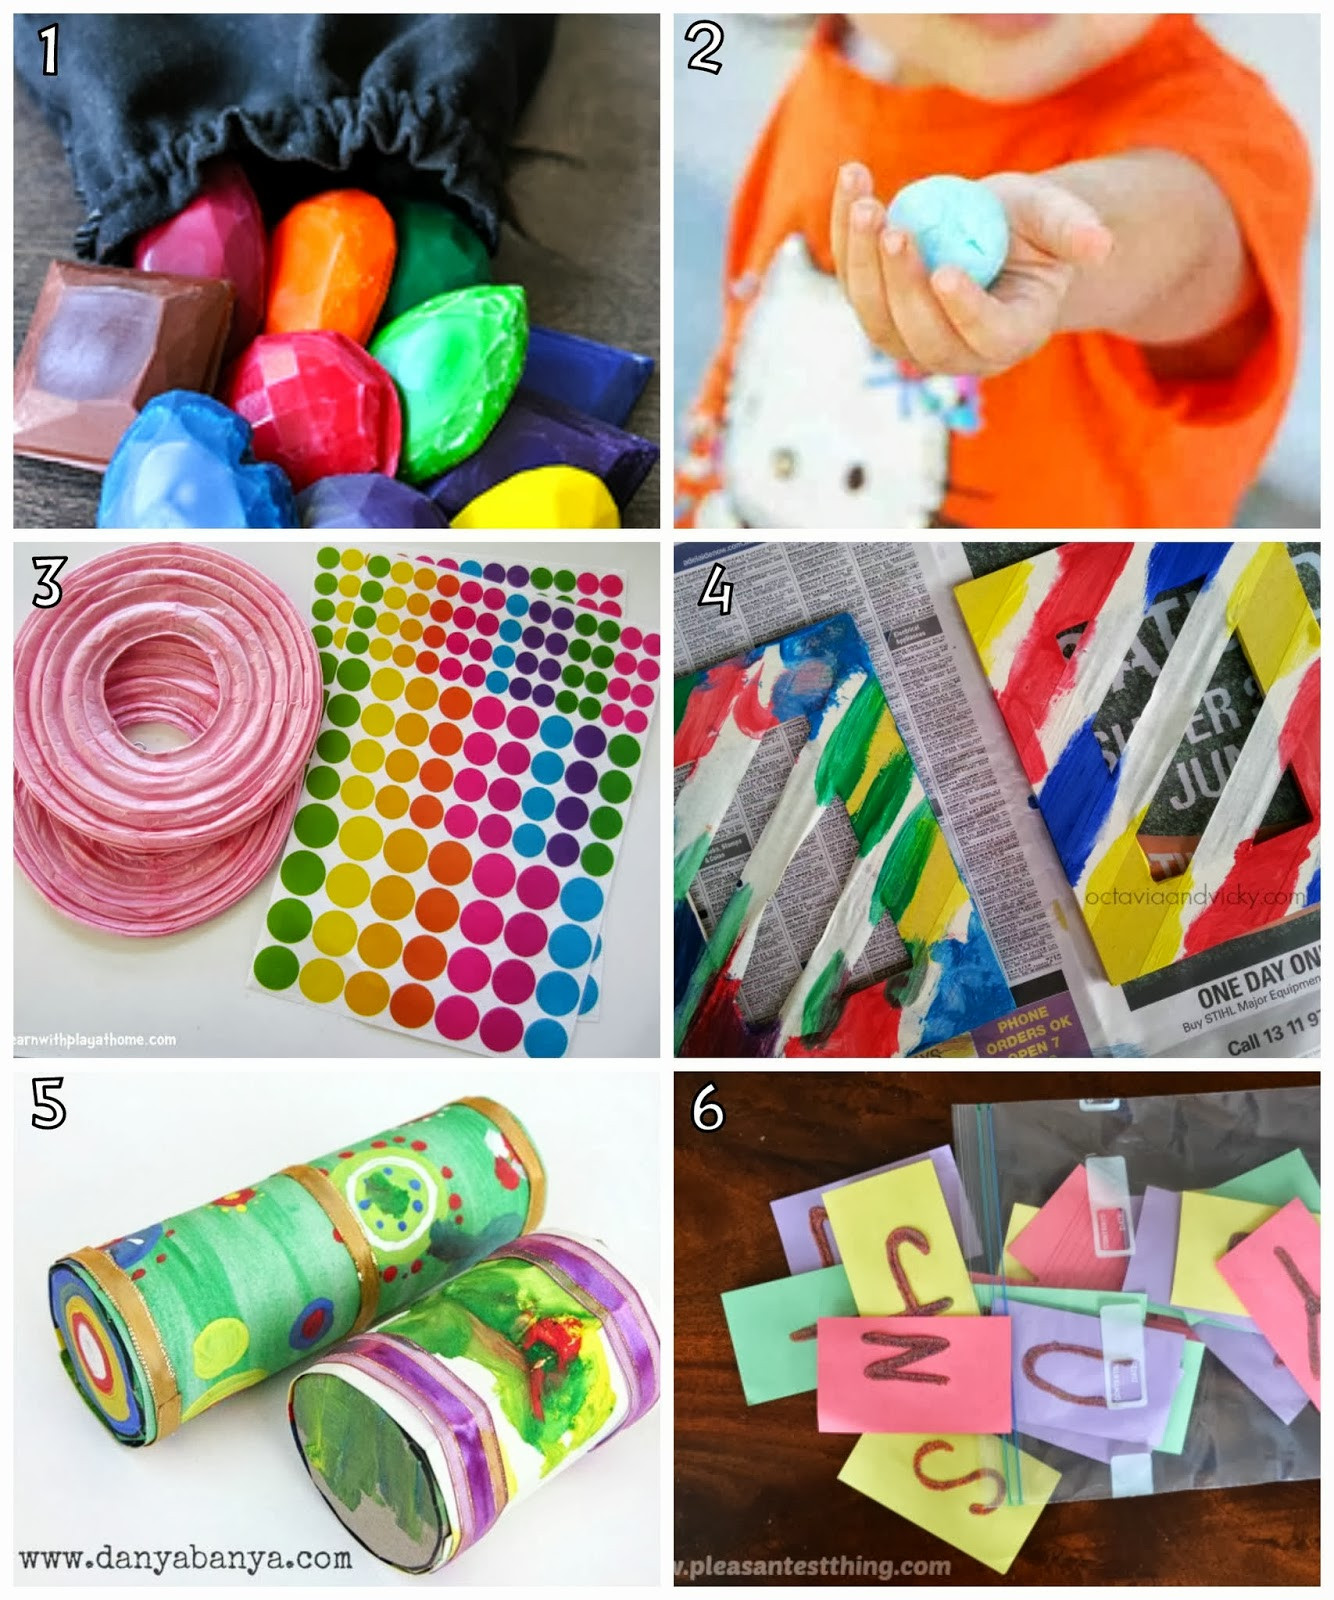 Best ideas about DIY Activities For Kids . Save or Pin Learn with Play at Home 12 fun DIY Activities for kids Now.